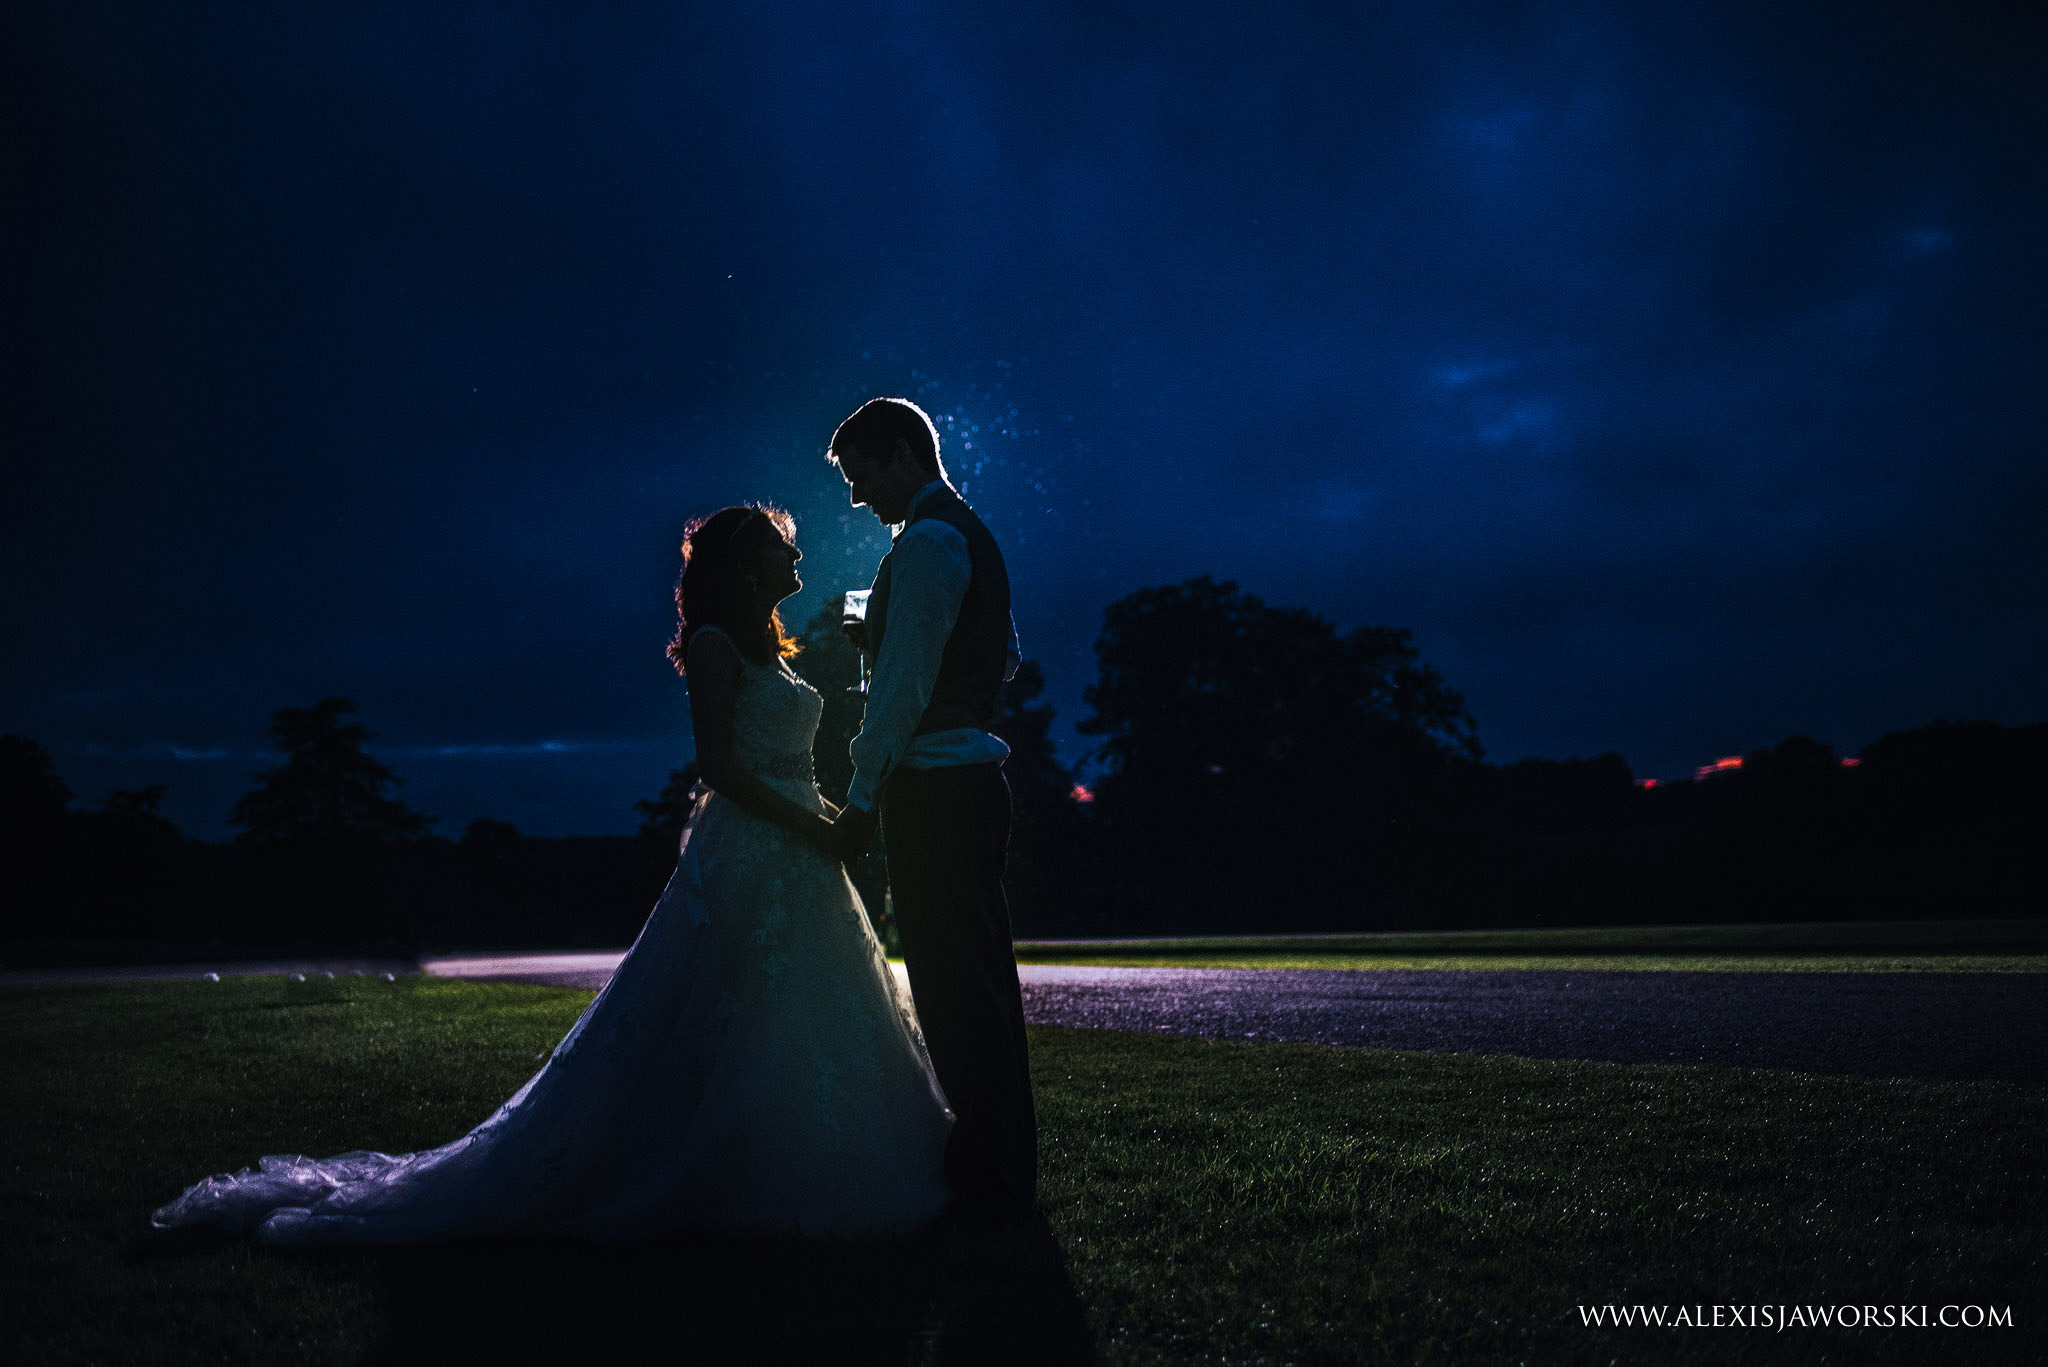 night portrait of the bride and broom